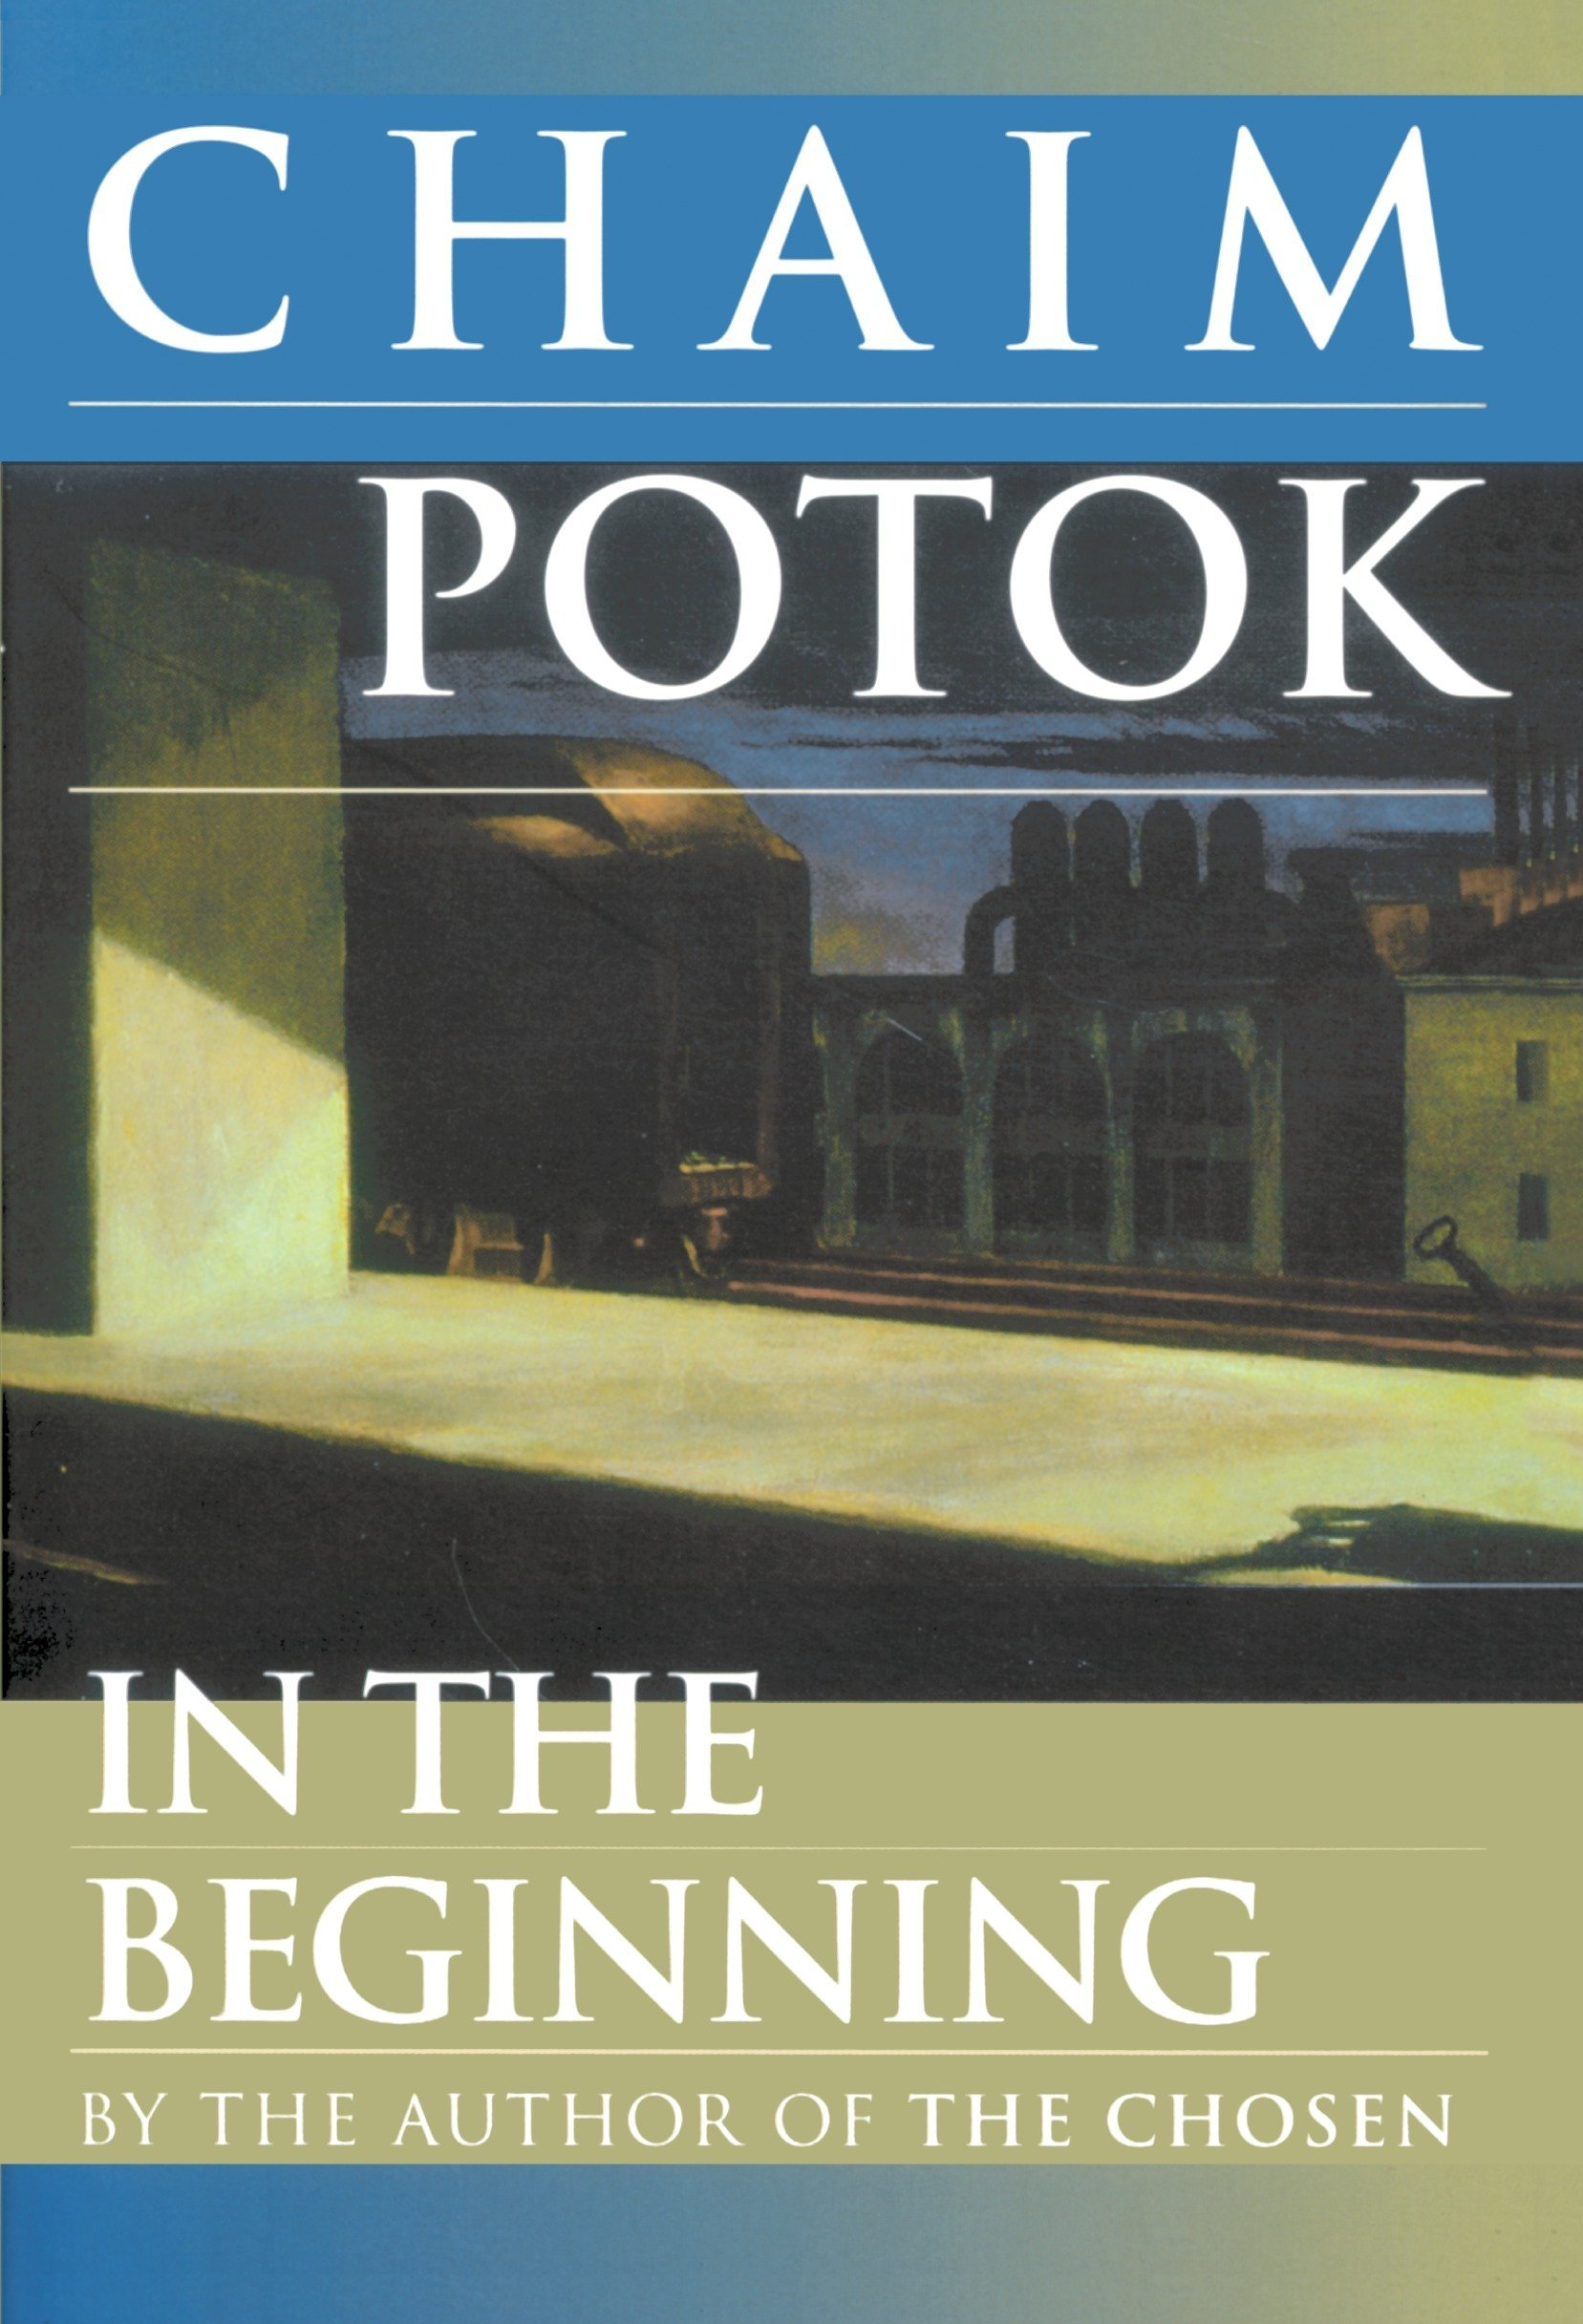 In the beginning a novel chaim potok 9780449001134 amazon books fandeluxe Gallery